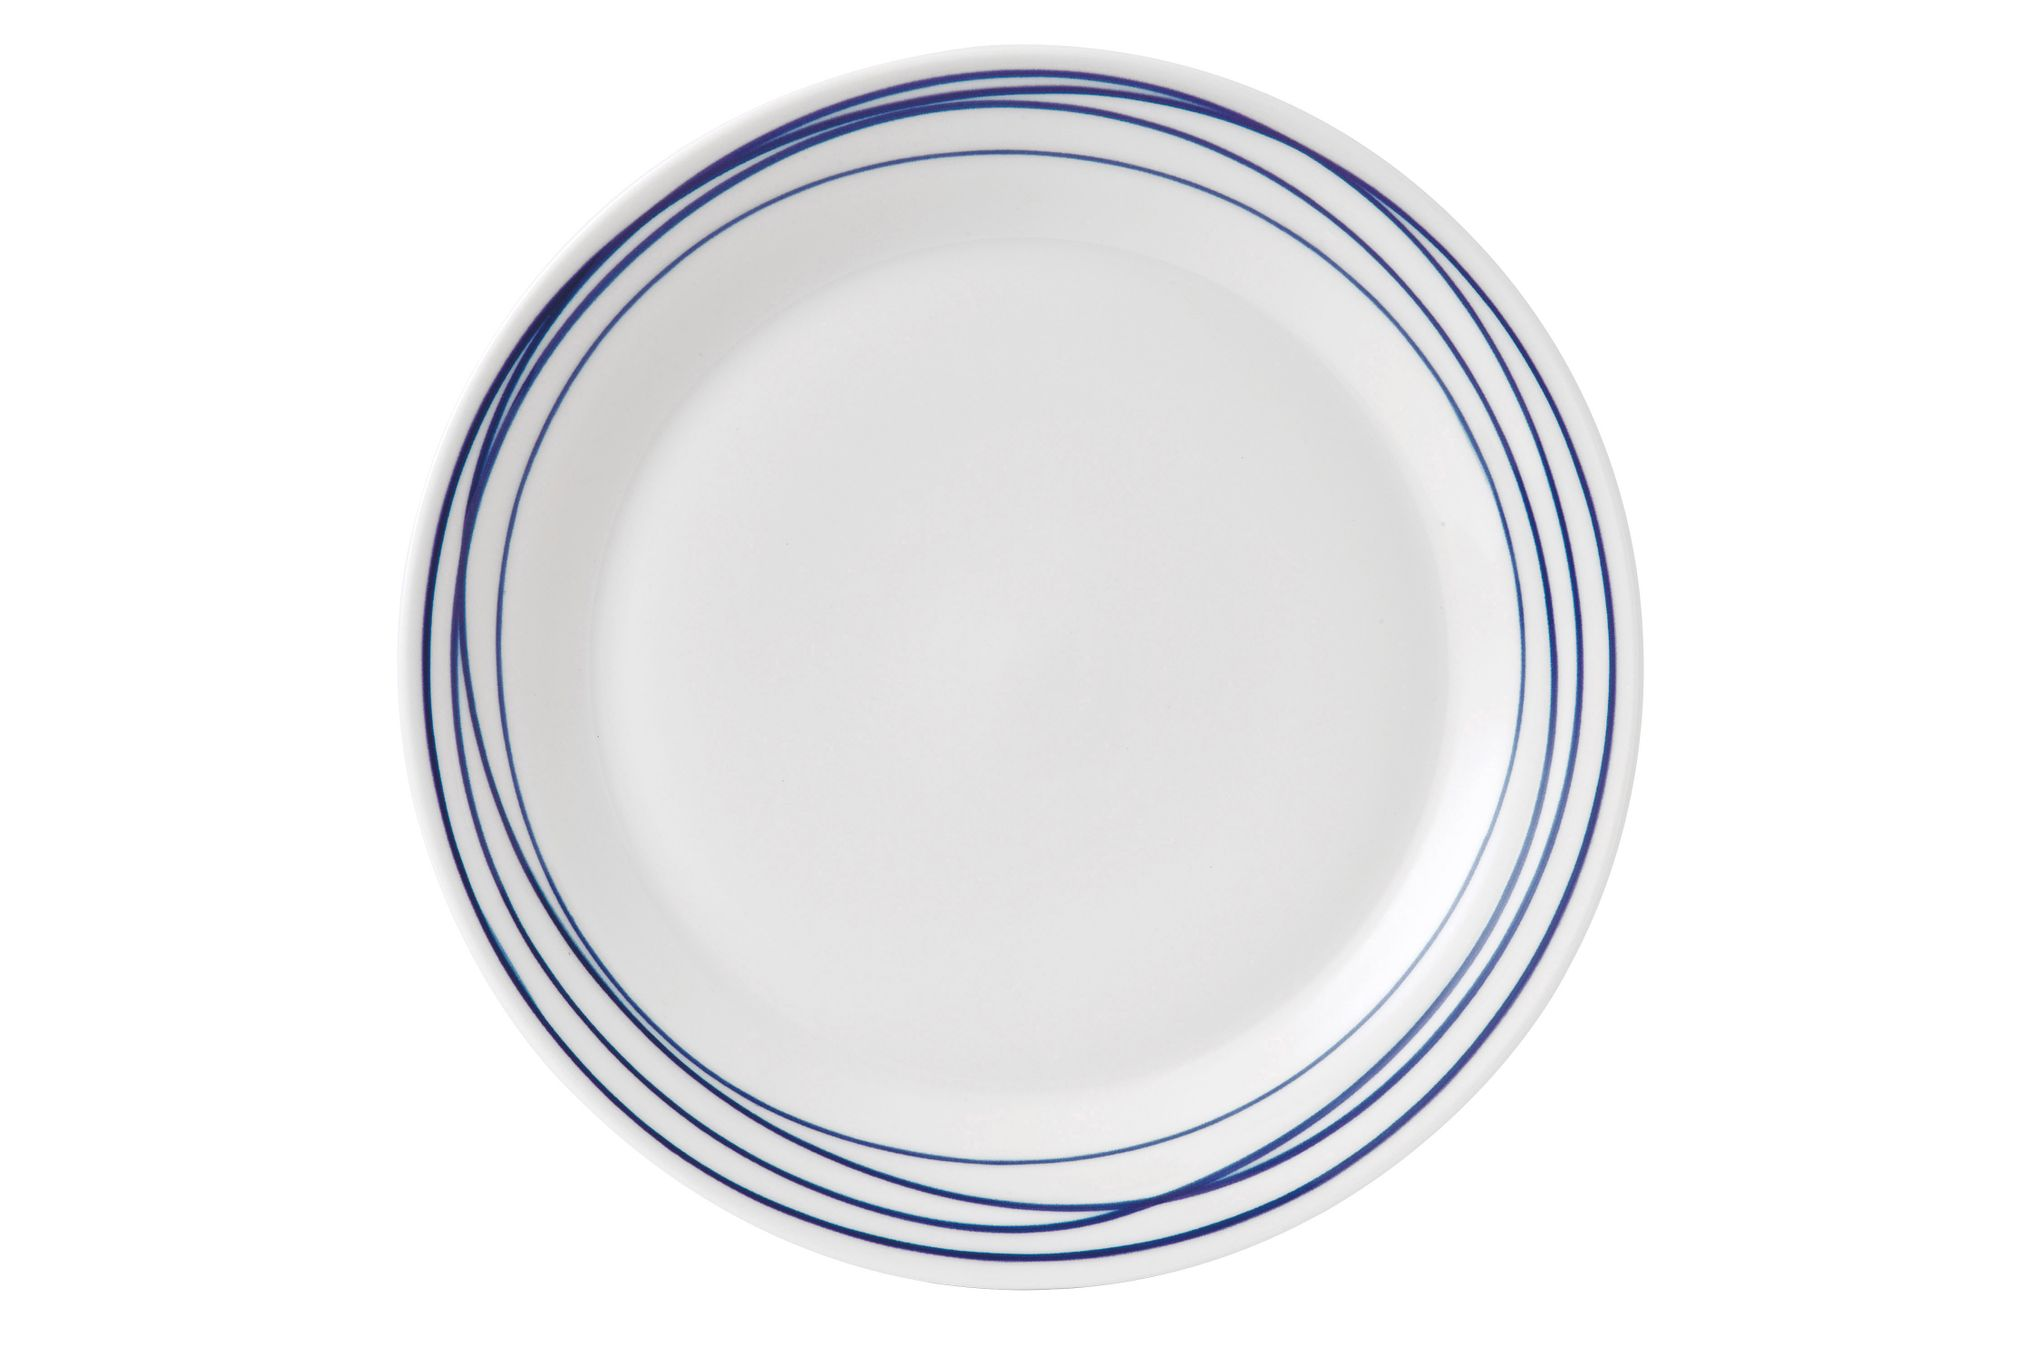 Royal Doulton Pacific Dinner Plate Lines 28cm thumb 1